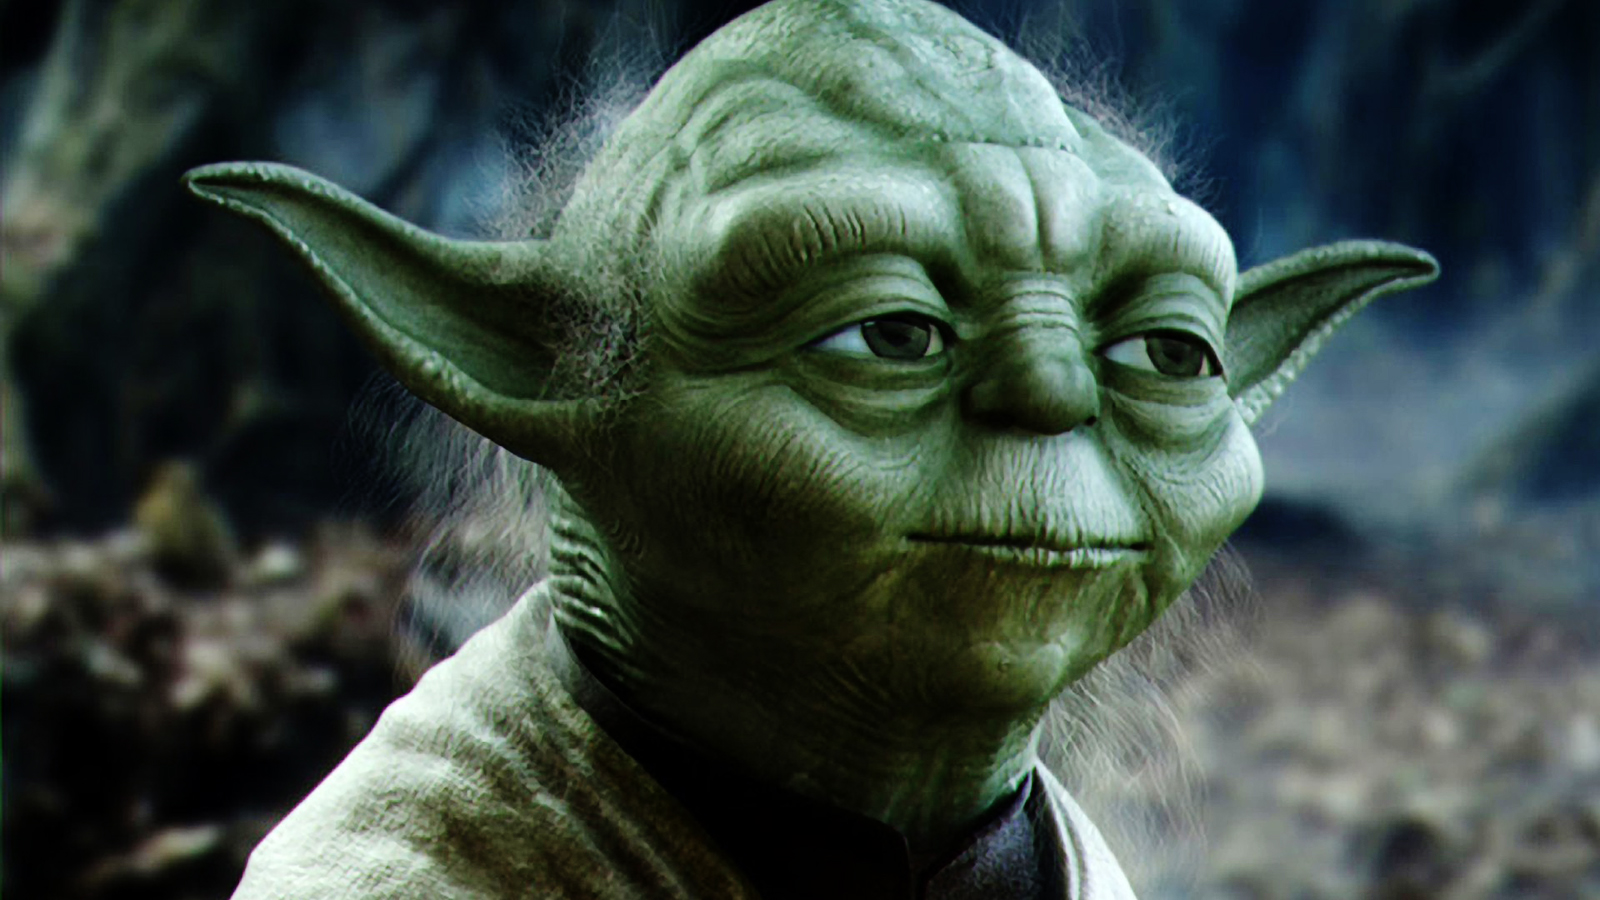 Yoda Wallpaper Picture designs – Learn More About This Character